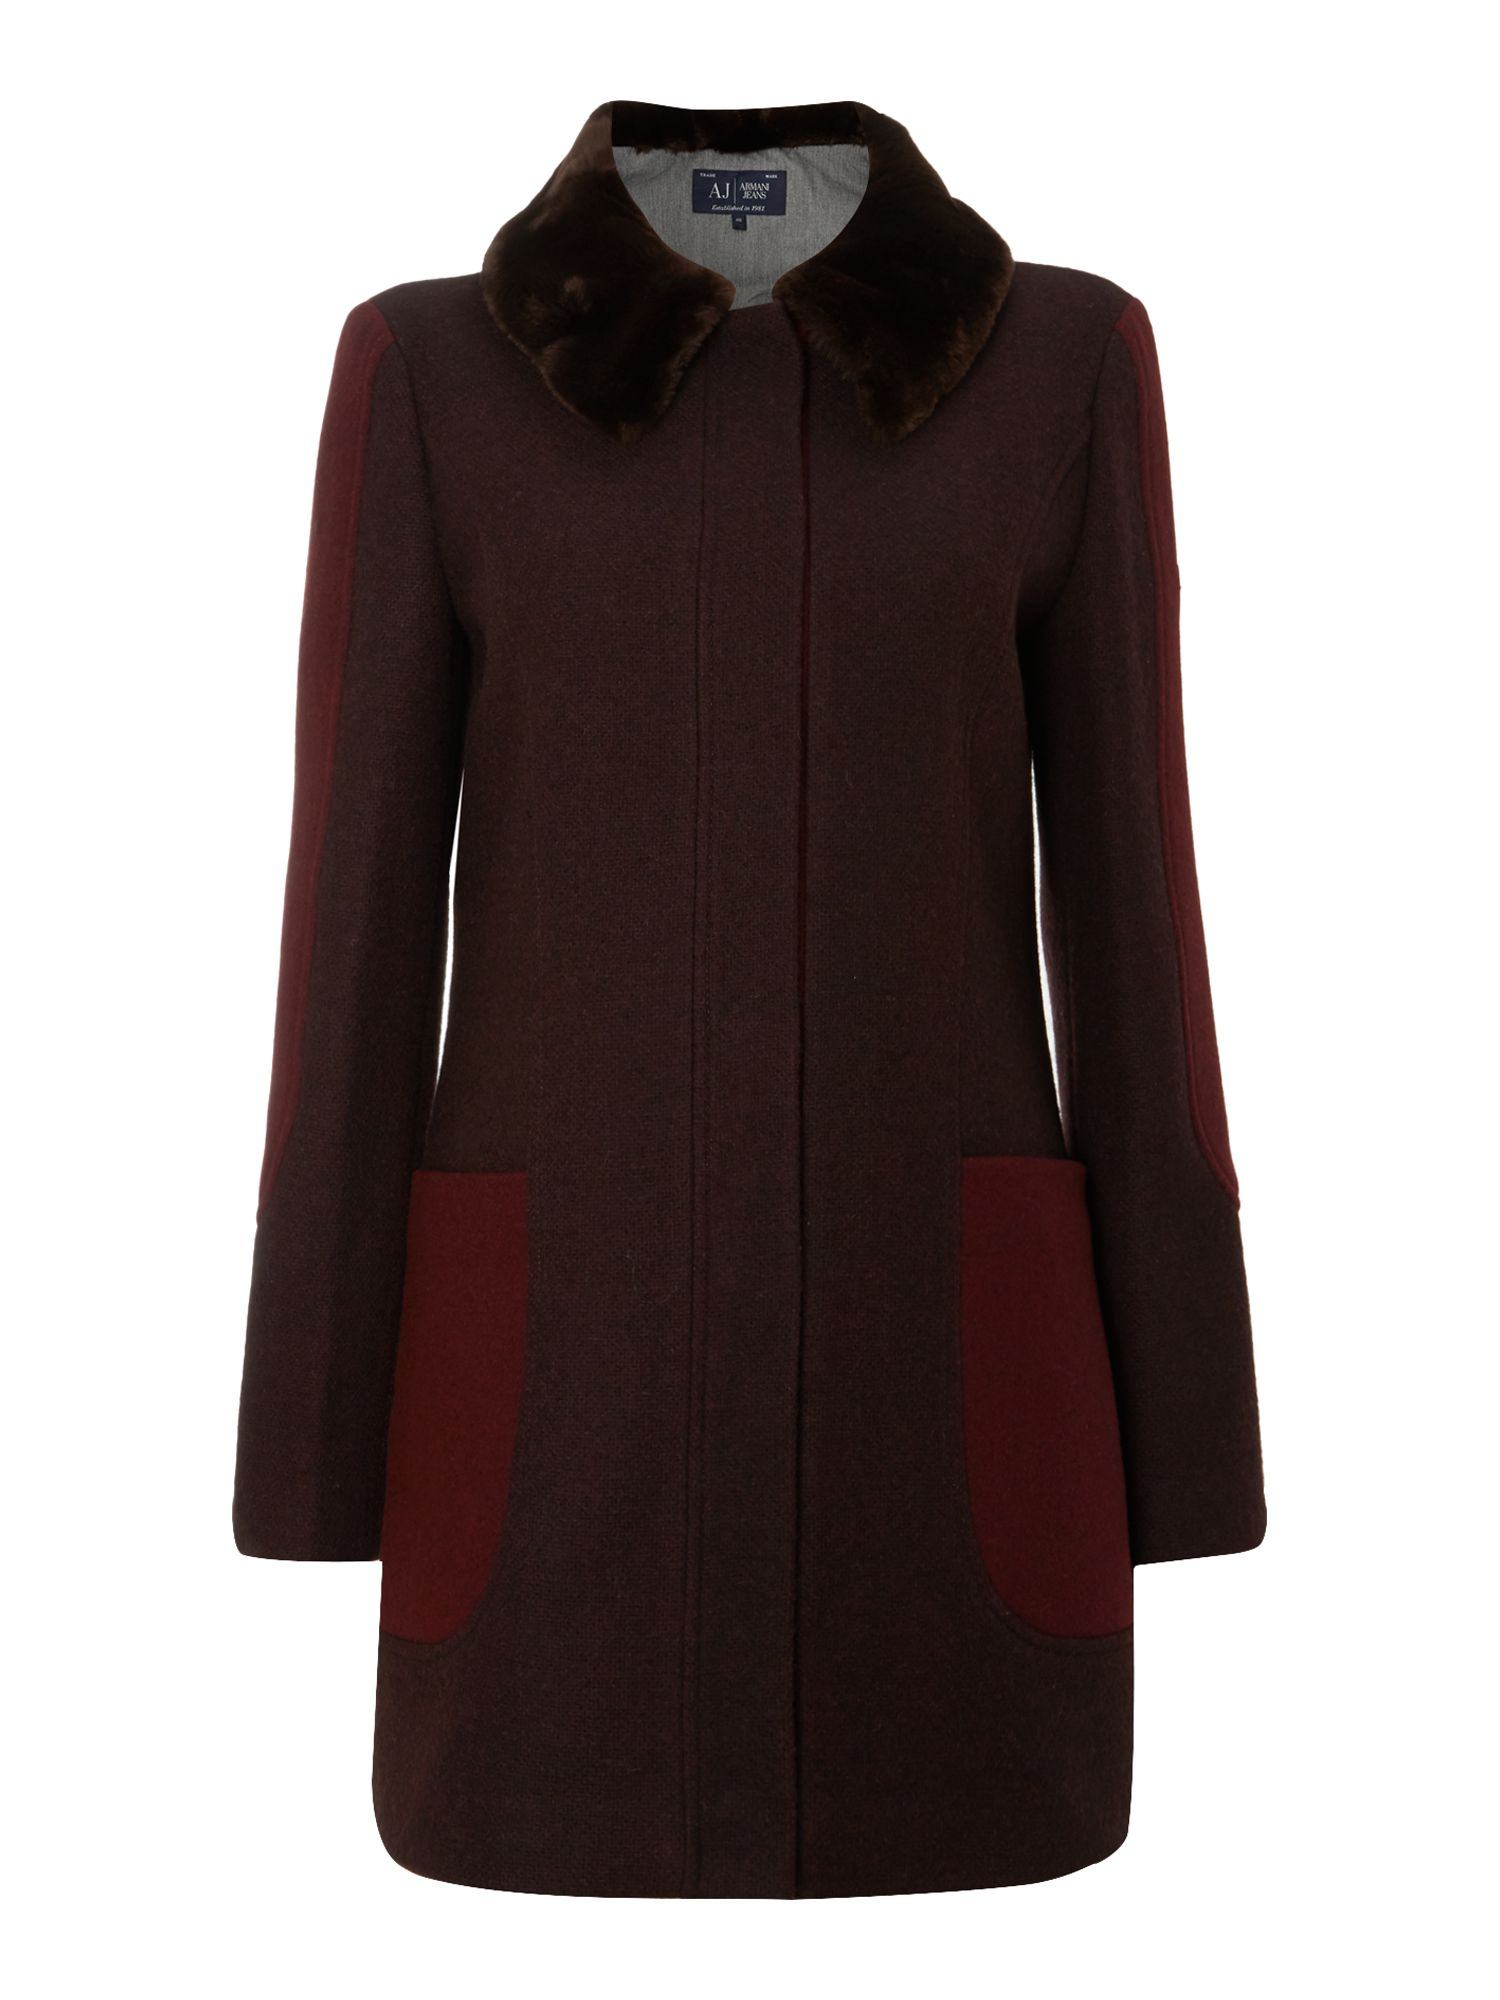 Wool coat with a fur collar